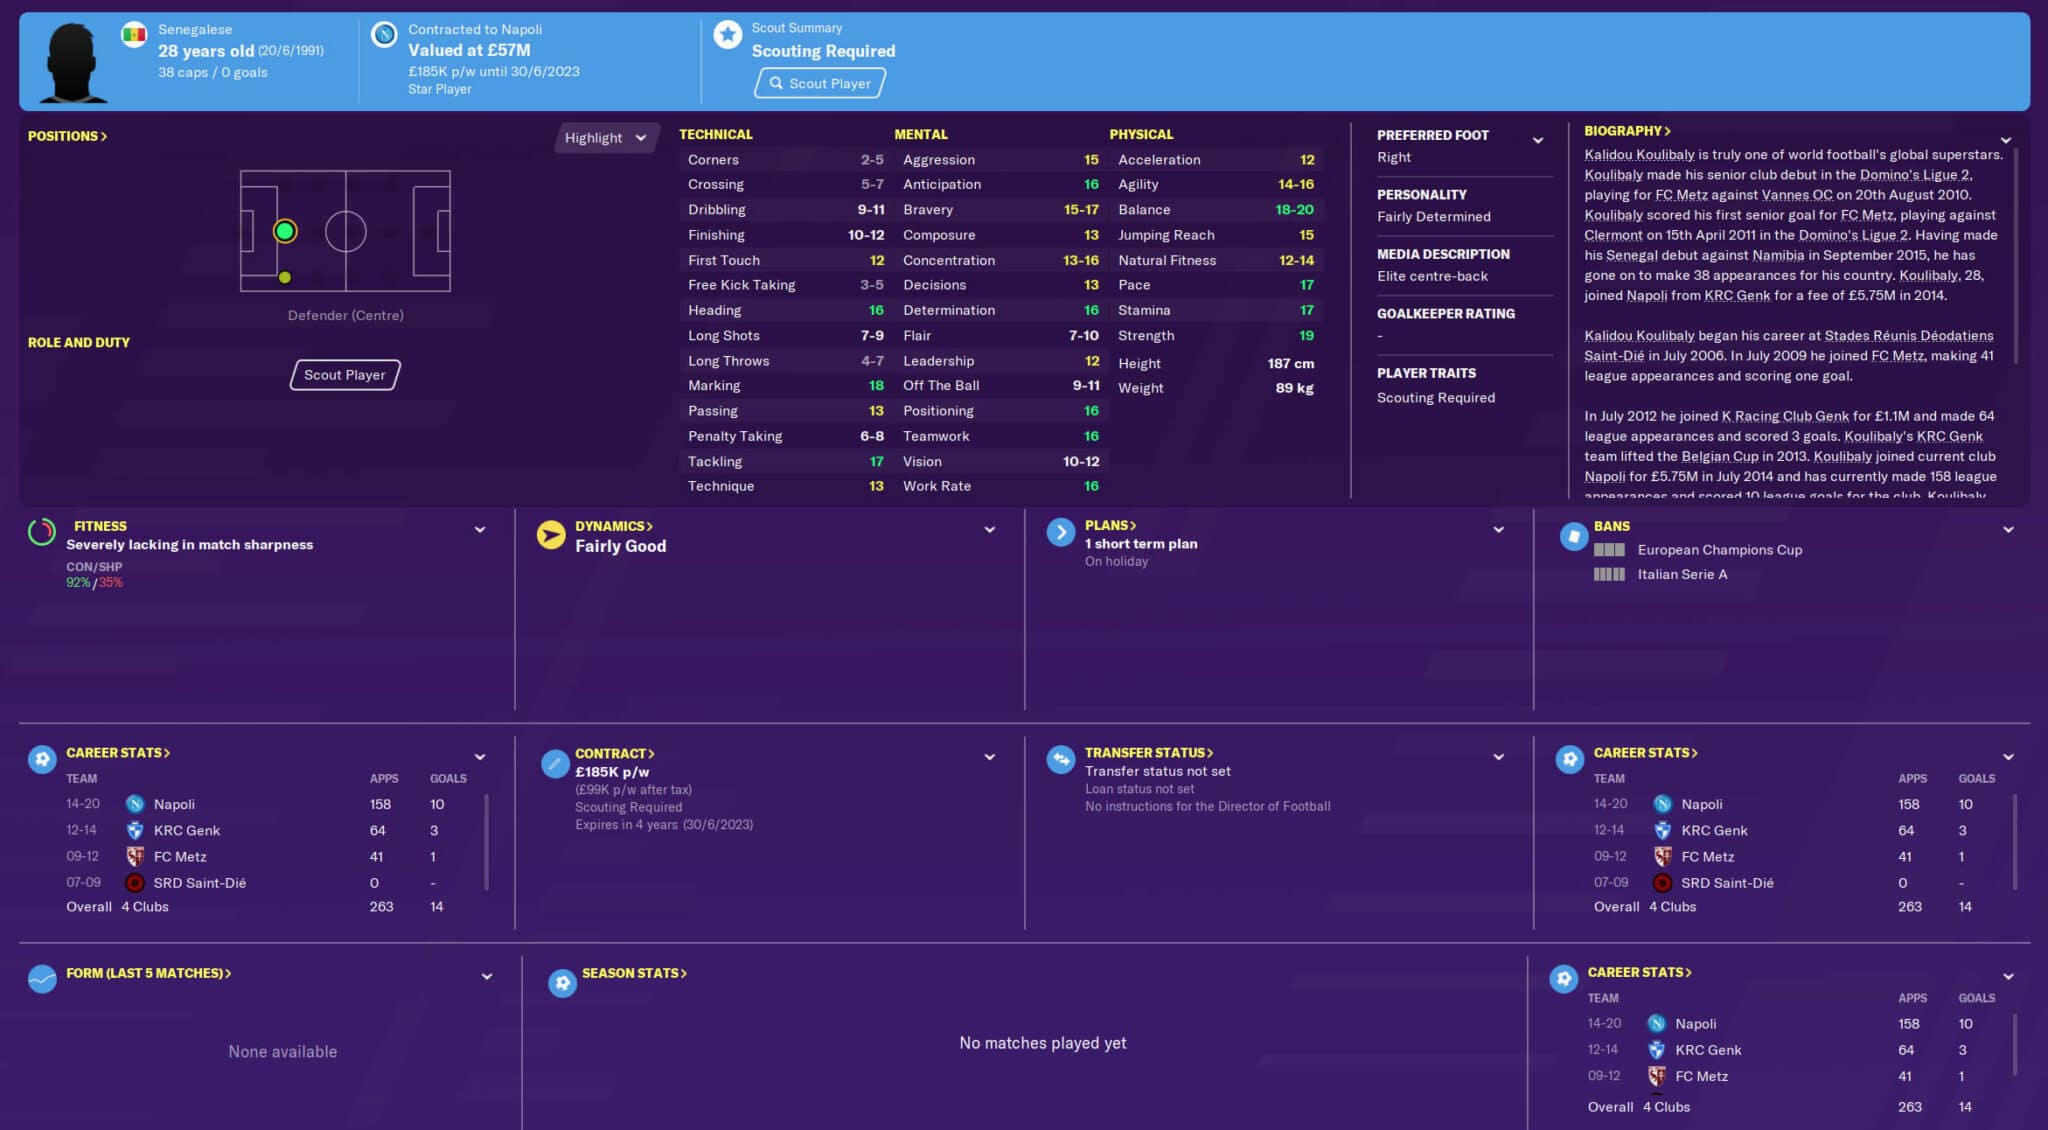 fm20 koulibaly Football Manager 2020 Best Players